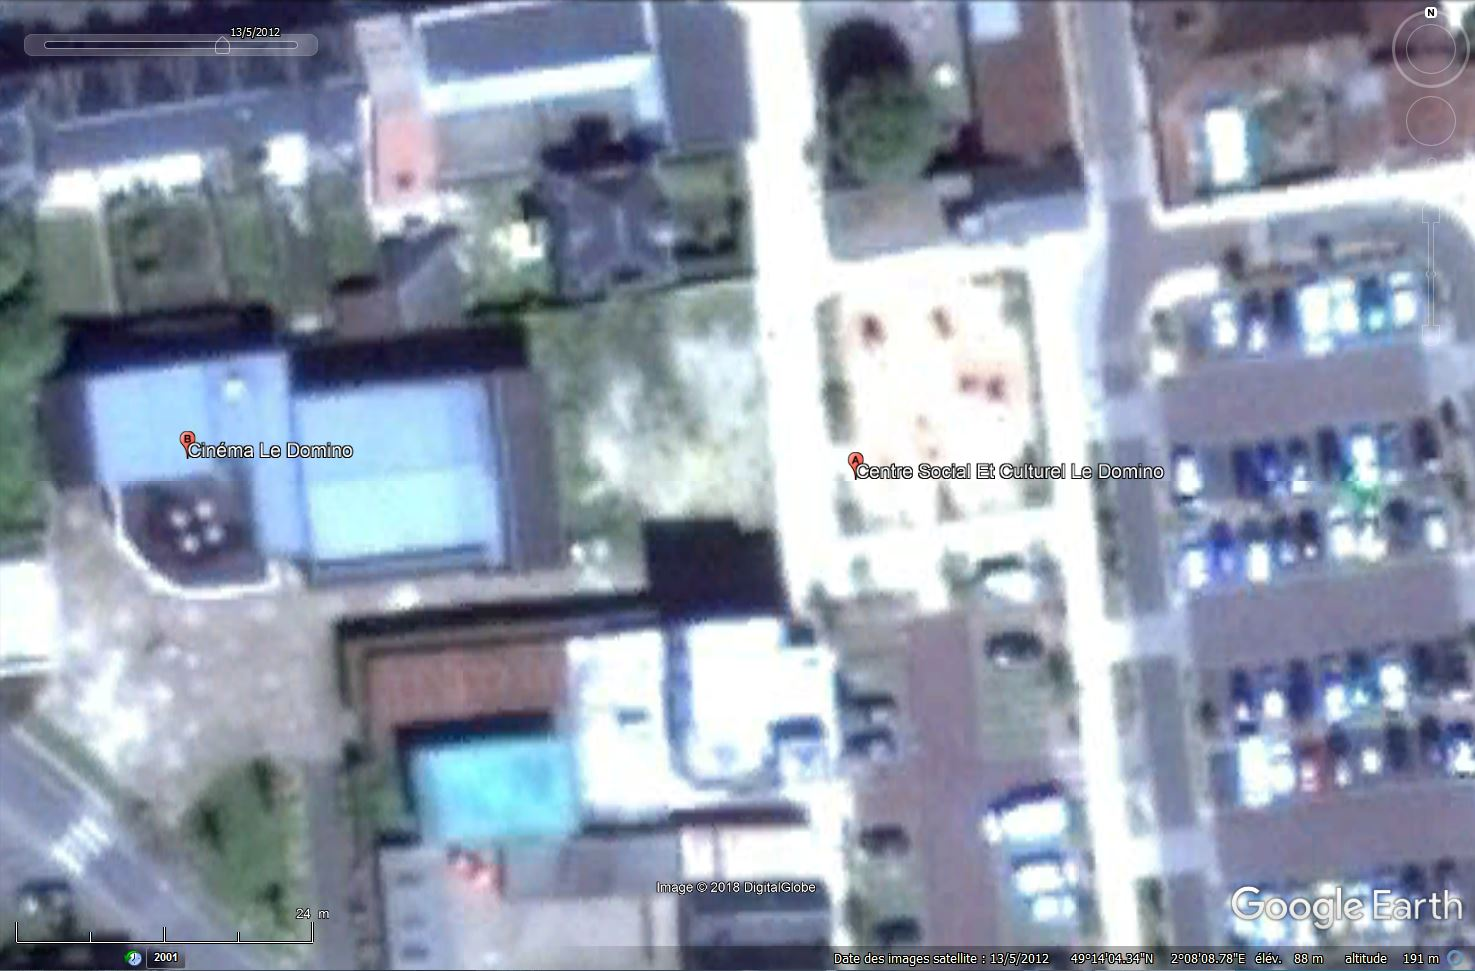 [Désormais visible sur Google Earth] - Centre Culturel de Méru, Oise Tsge_168